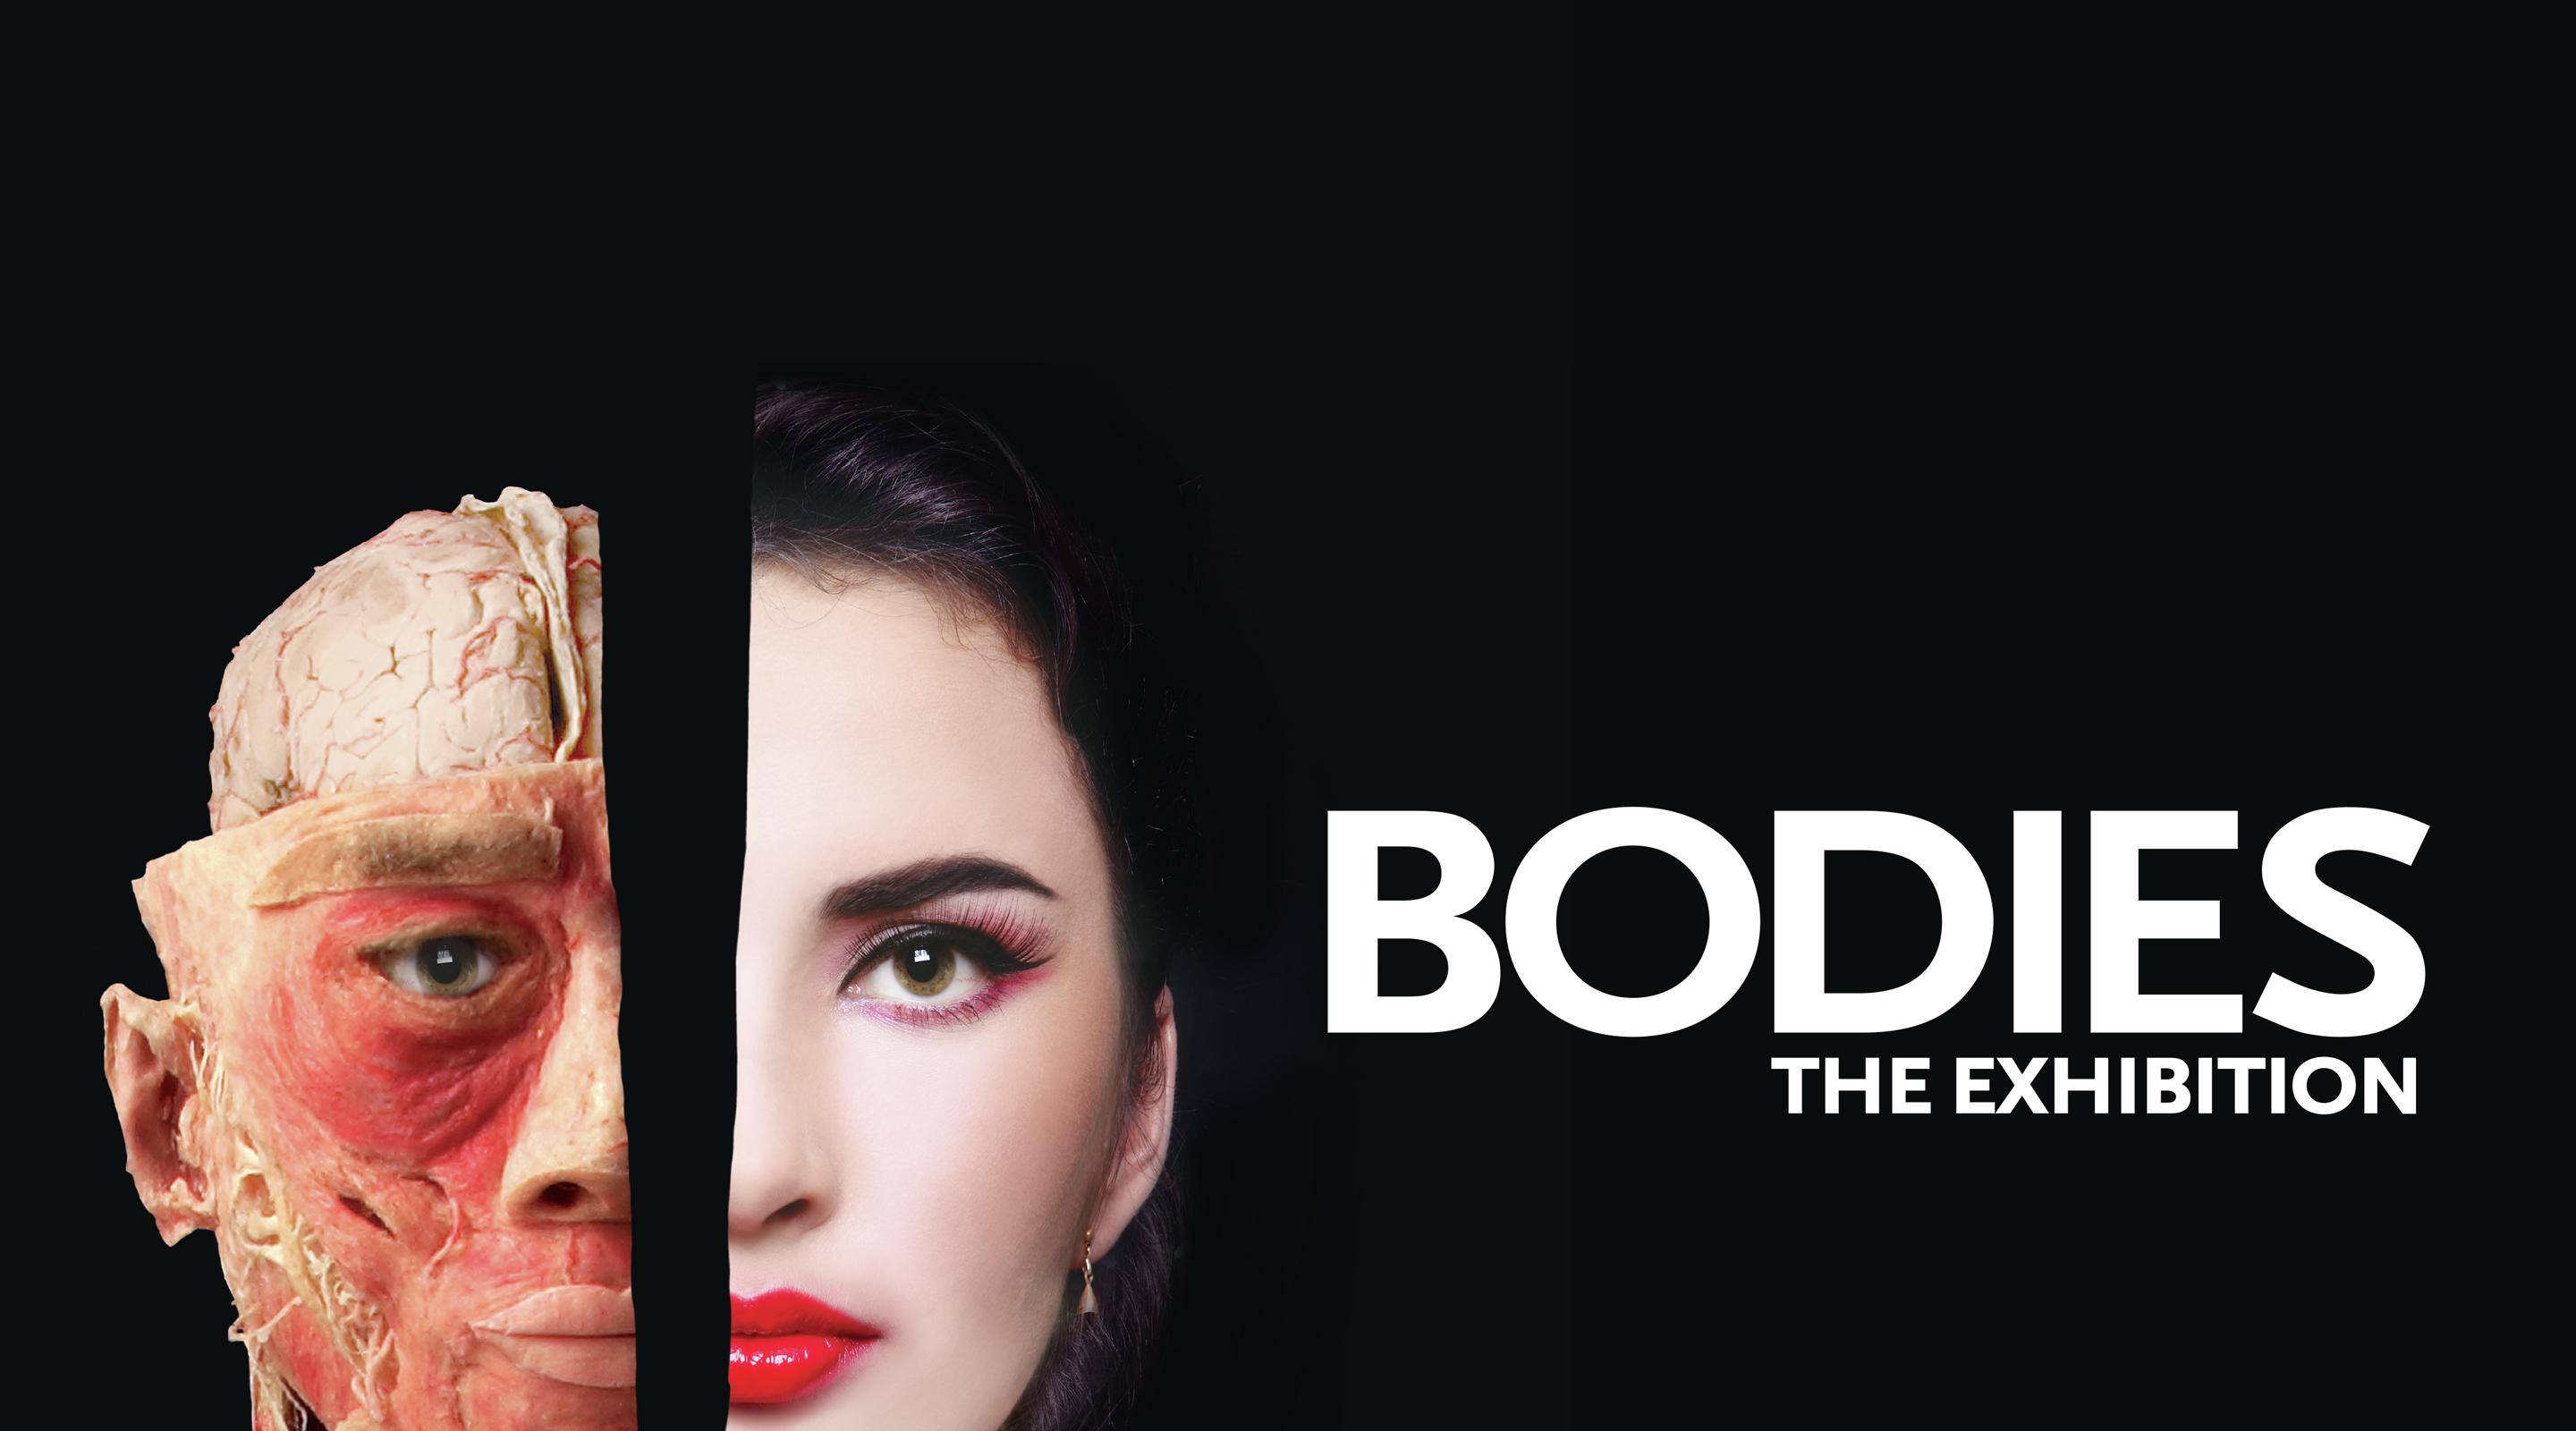 Essay on bodies the exhibition